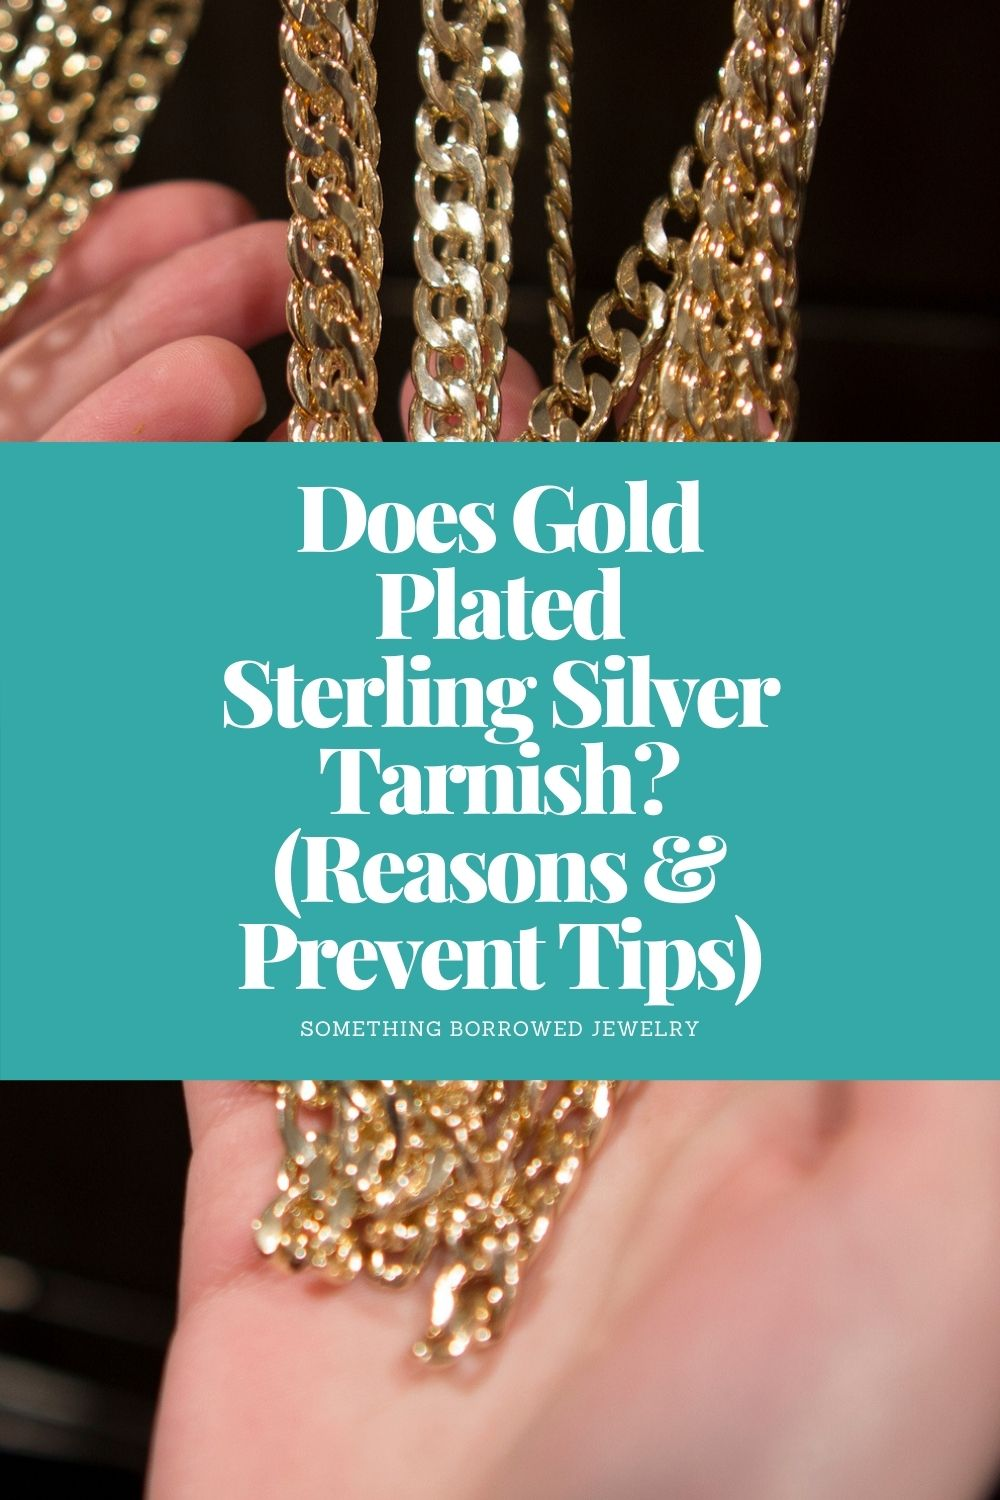 Does Gold Plated Sterling Silver Tarnish (Reasons & Prevent Tips) pin 2